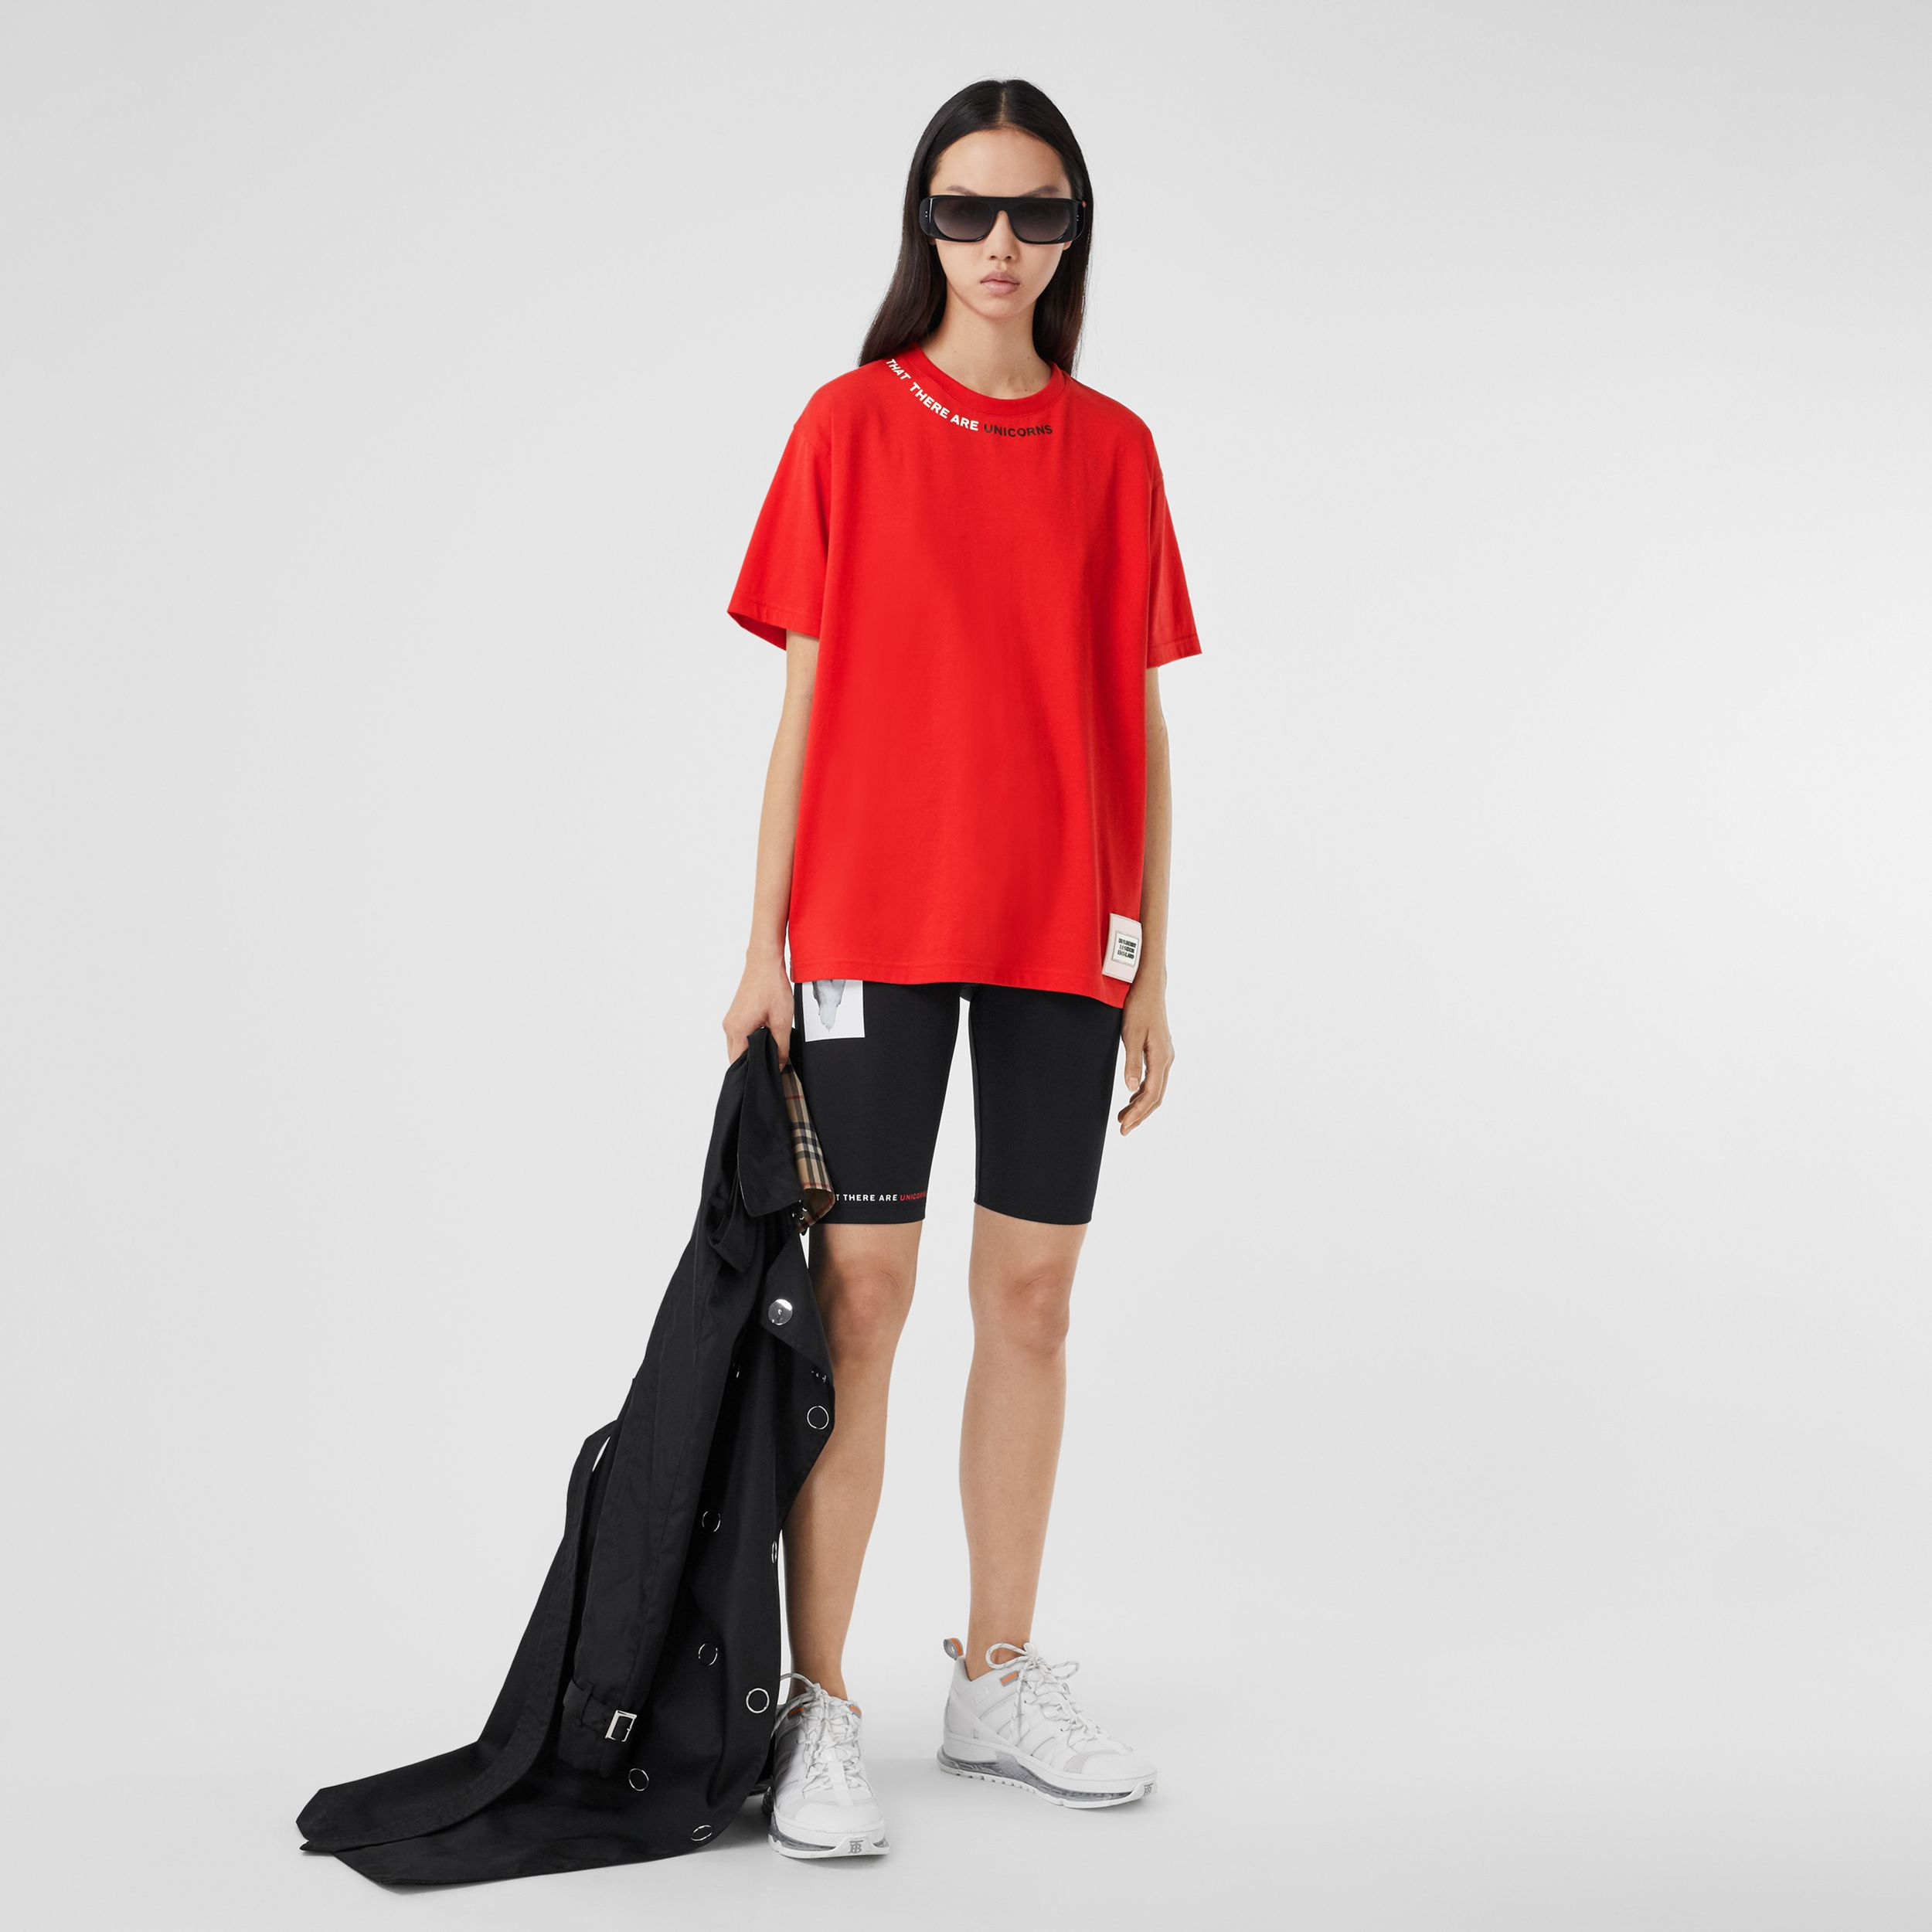 Quote Print Cotton Oversized T-shirt in Bright Red - Women | Burberry - 1